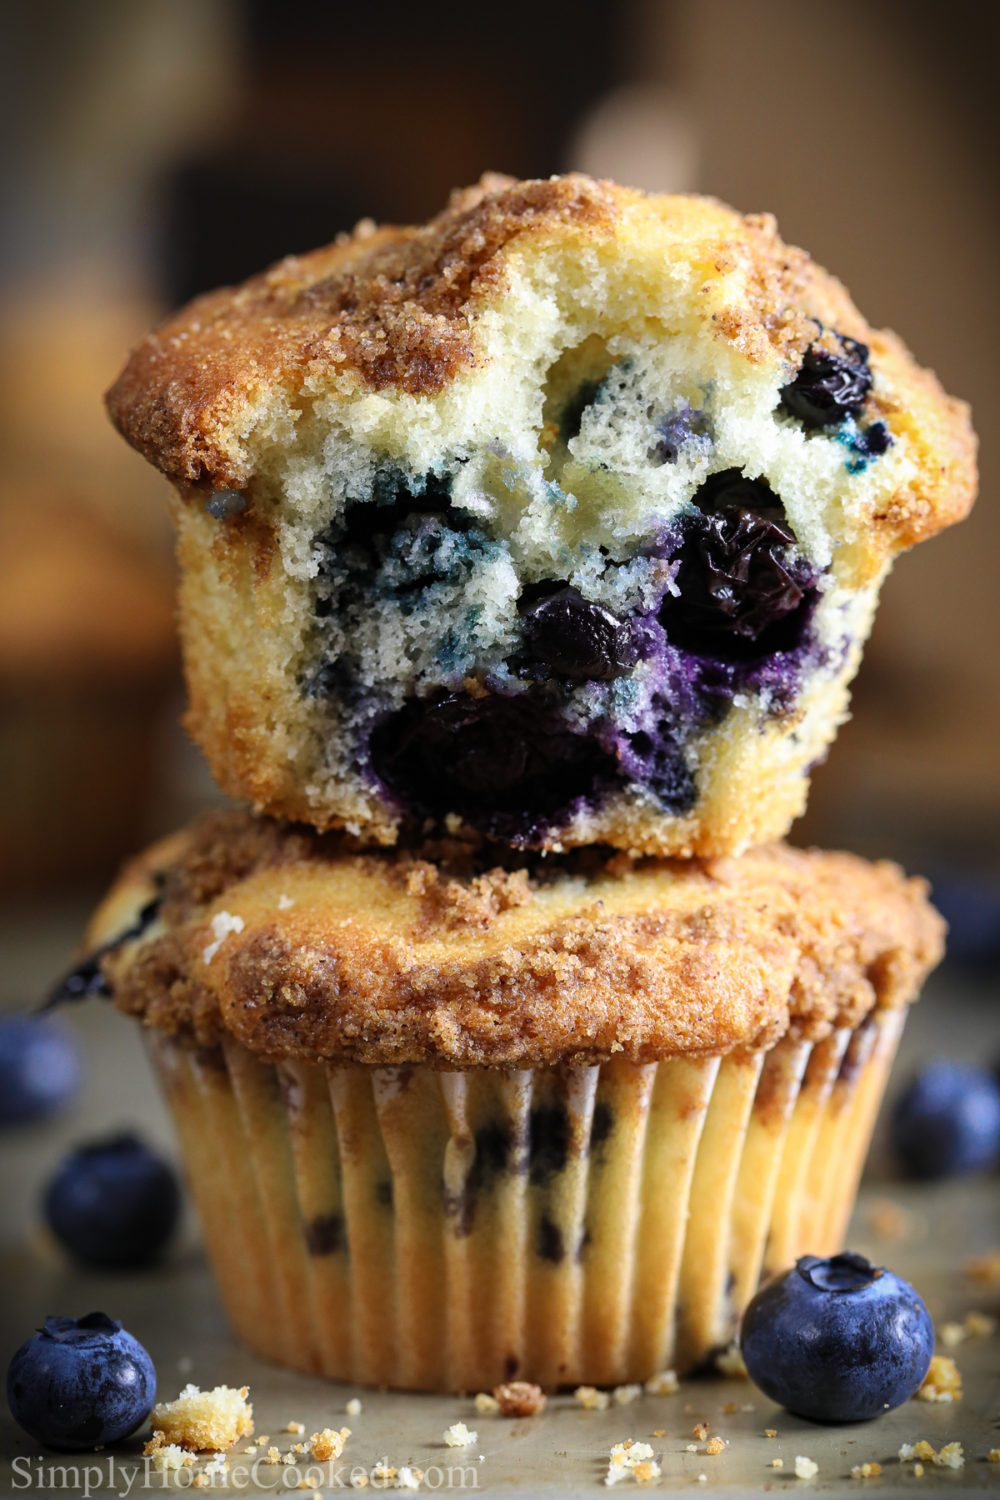 Blueberry Muffin - $7.50